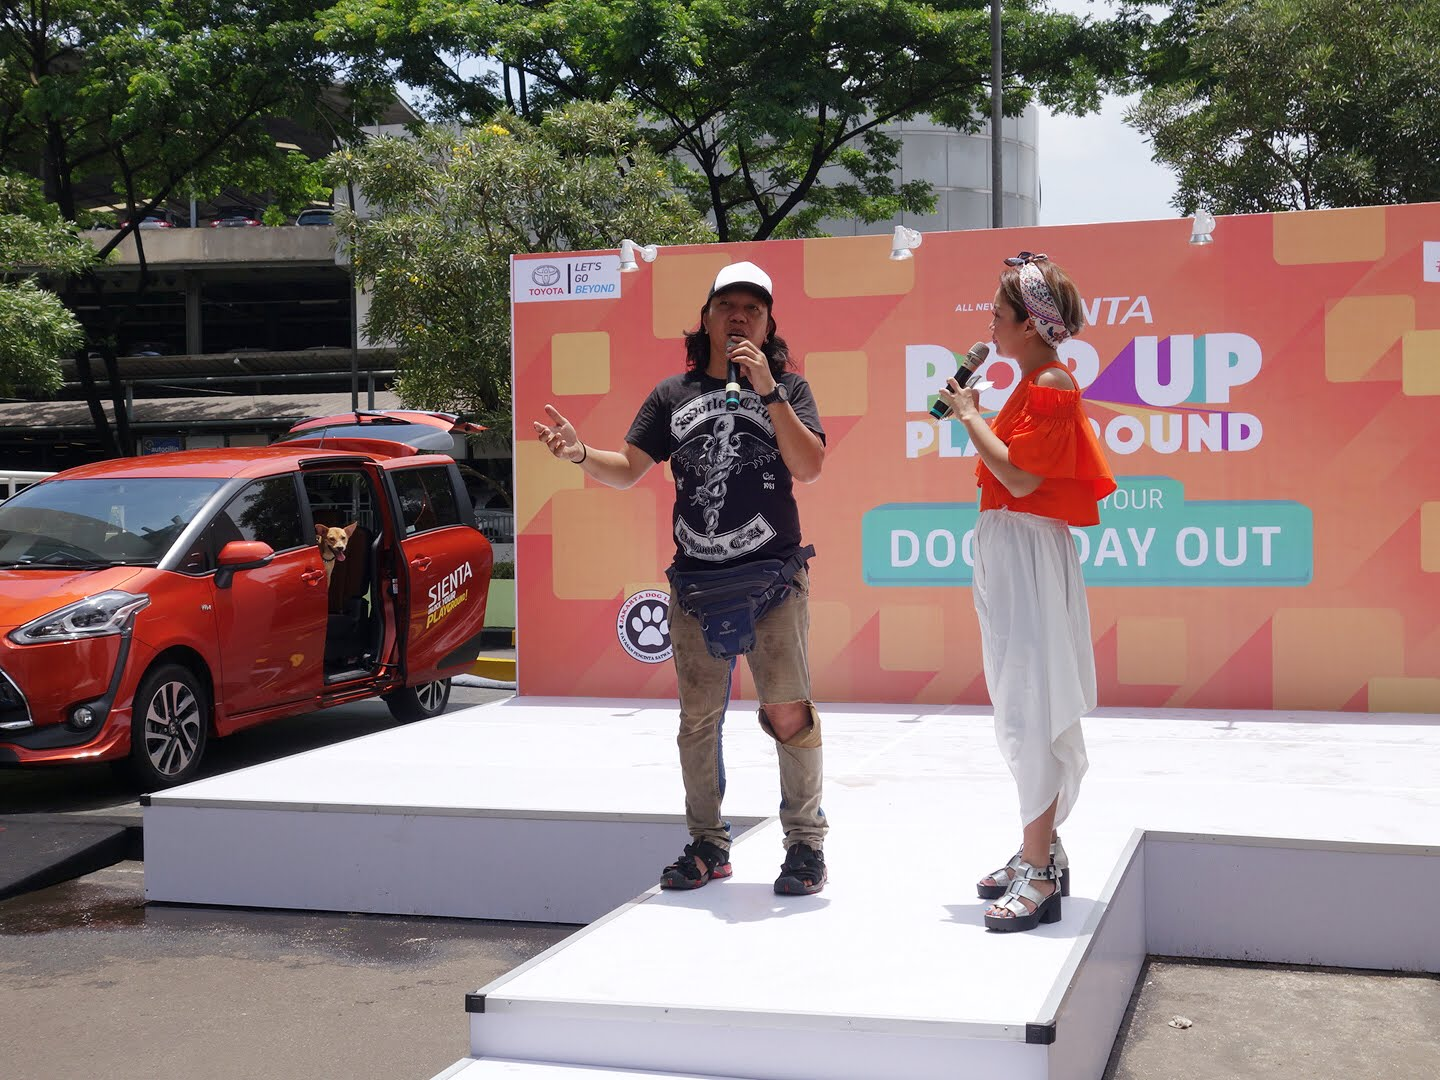 Sienta PopUpPlayground Dogs Day Out Putri Kansil My Eco Bella